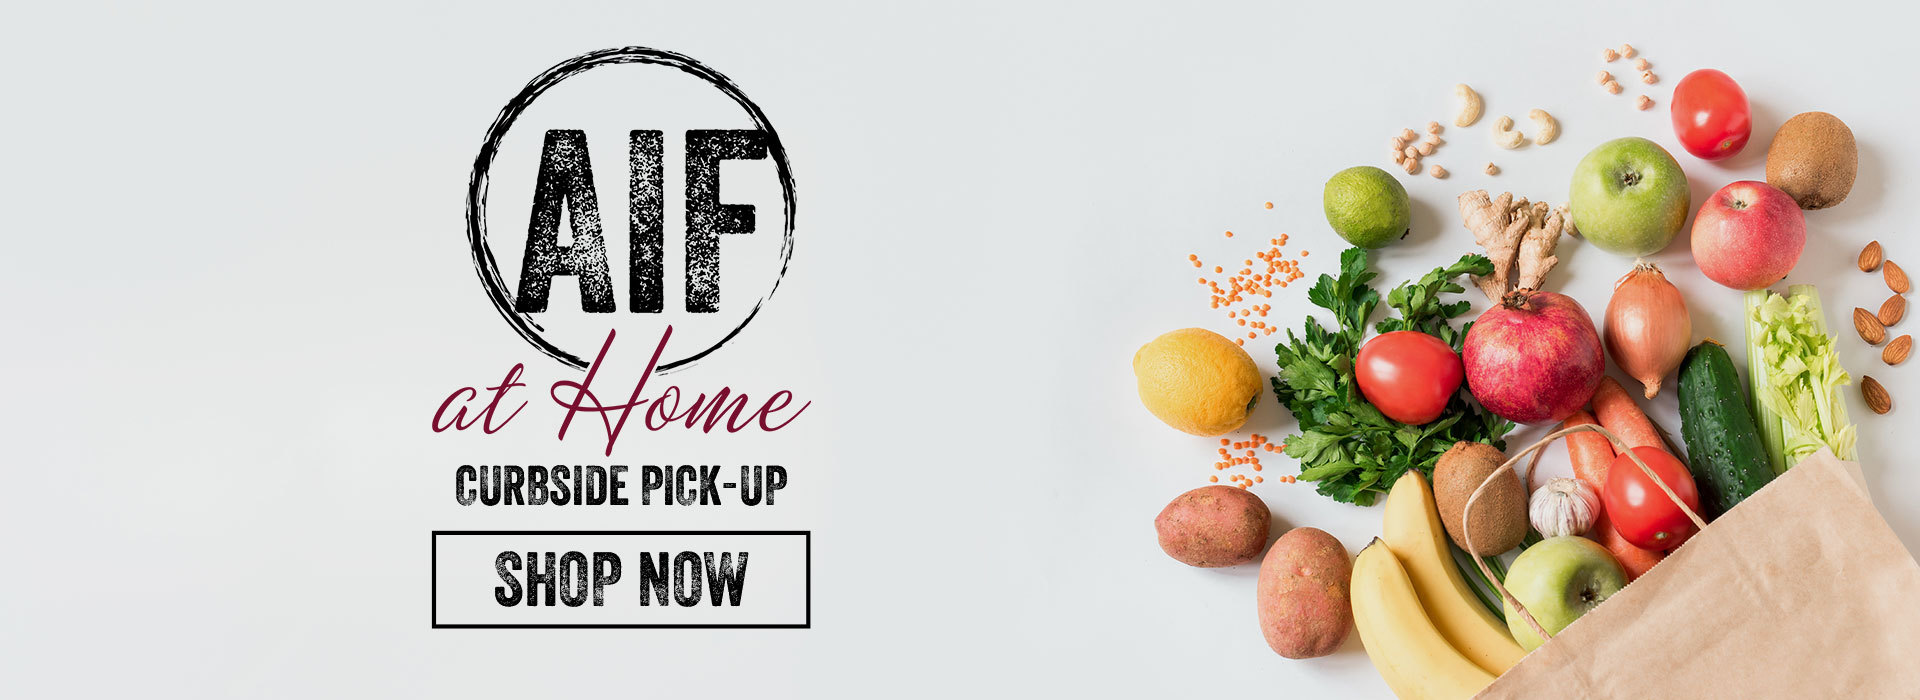 AIF at Home - Curbside Pickup Groceries in Albany, Saratoga, Clifton Park NY